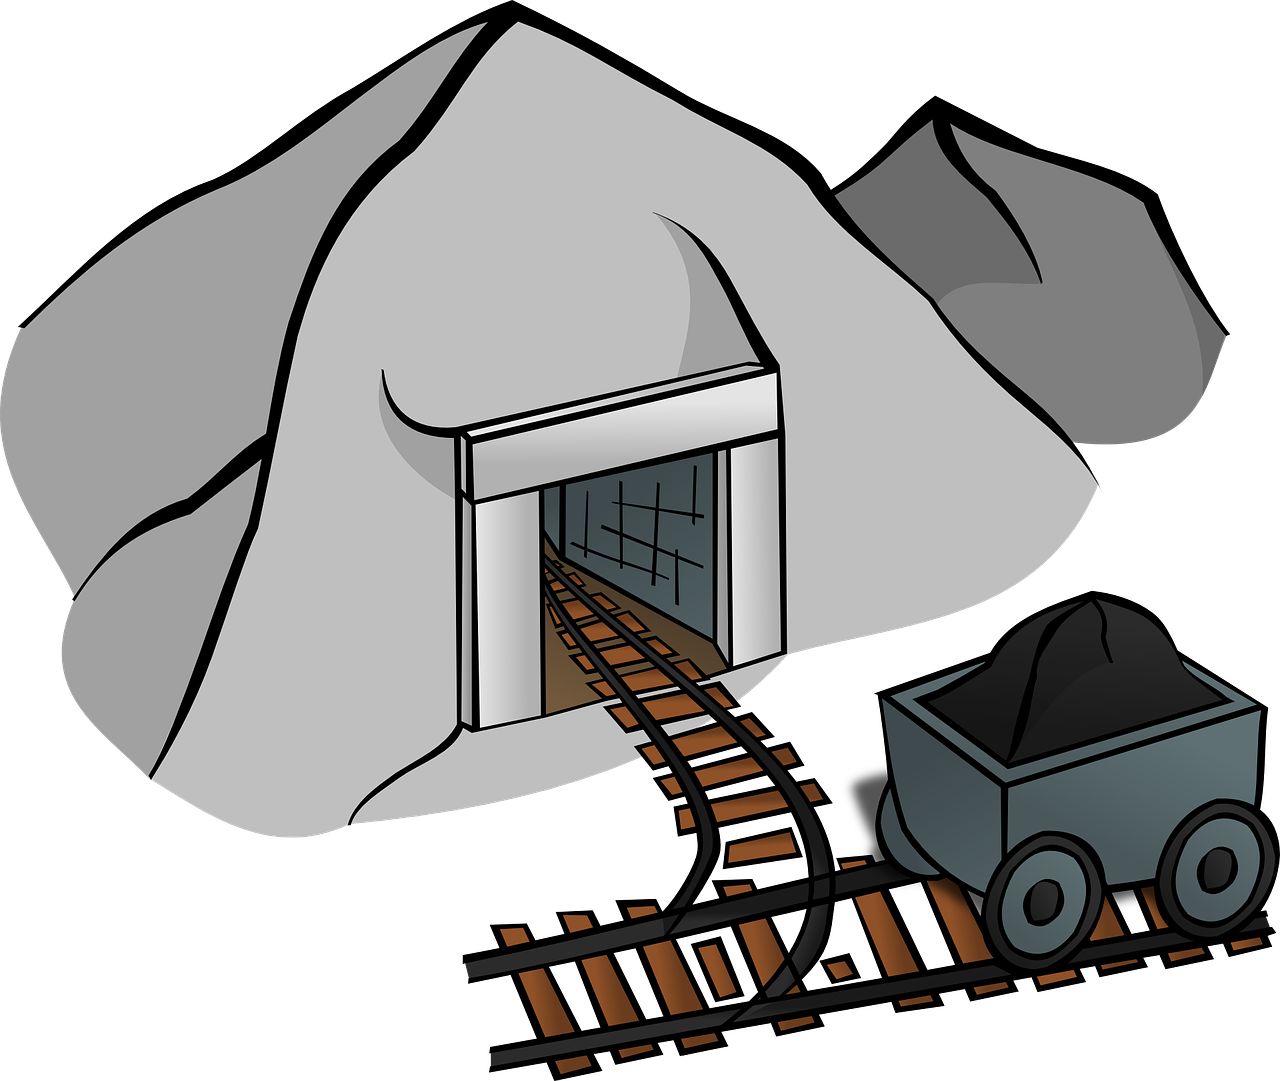 Coal clipart mine entrance. Cave lorry png image